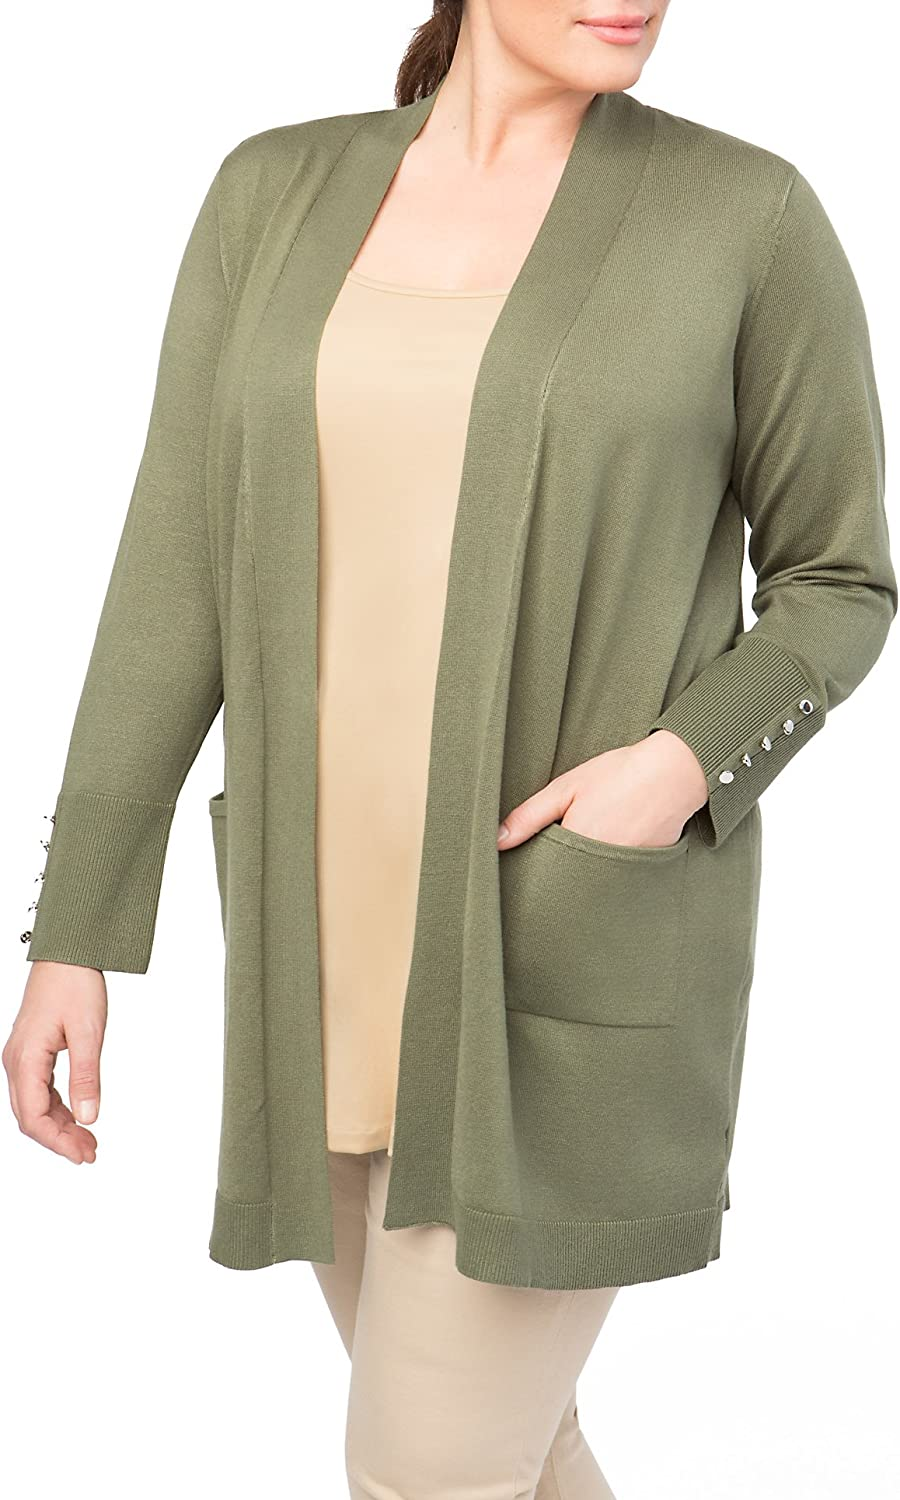 89th + Madison Women's Ultra Comfortable Open Front Cardigan with Long Sleeves